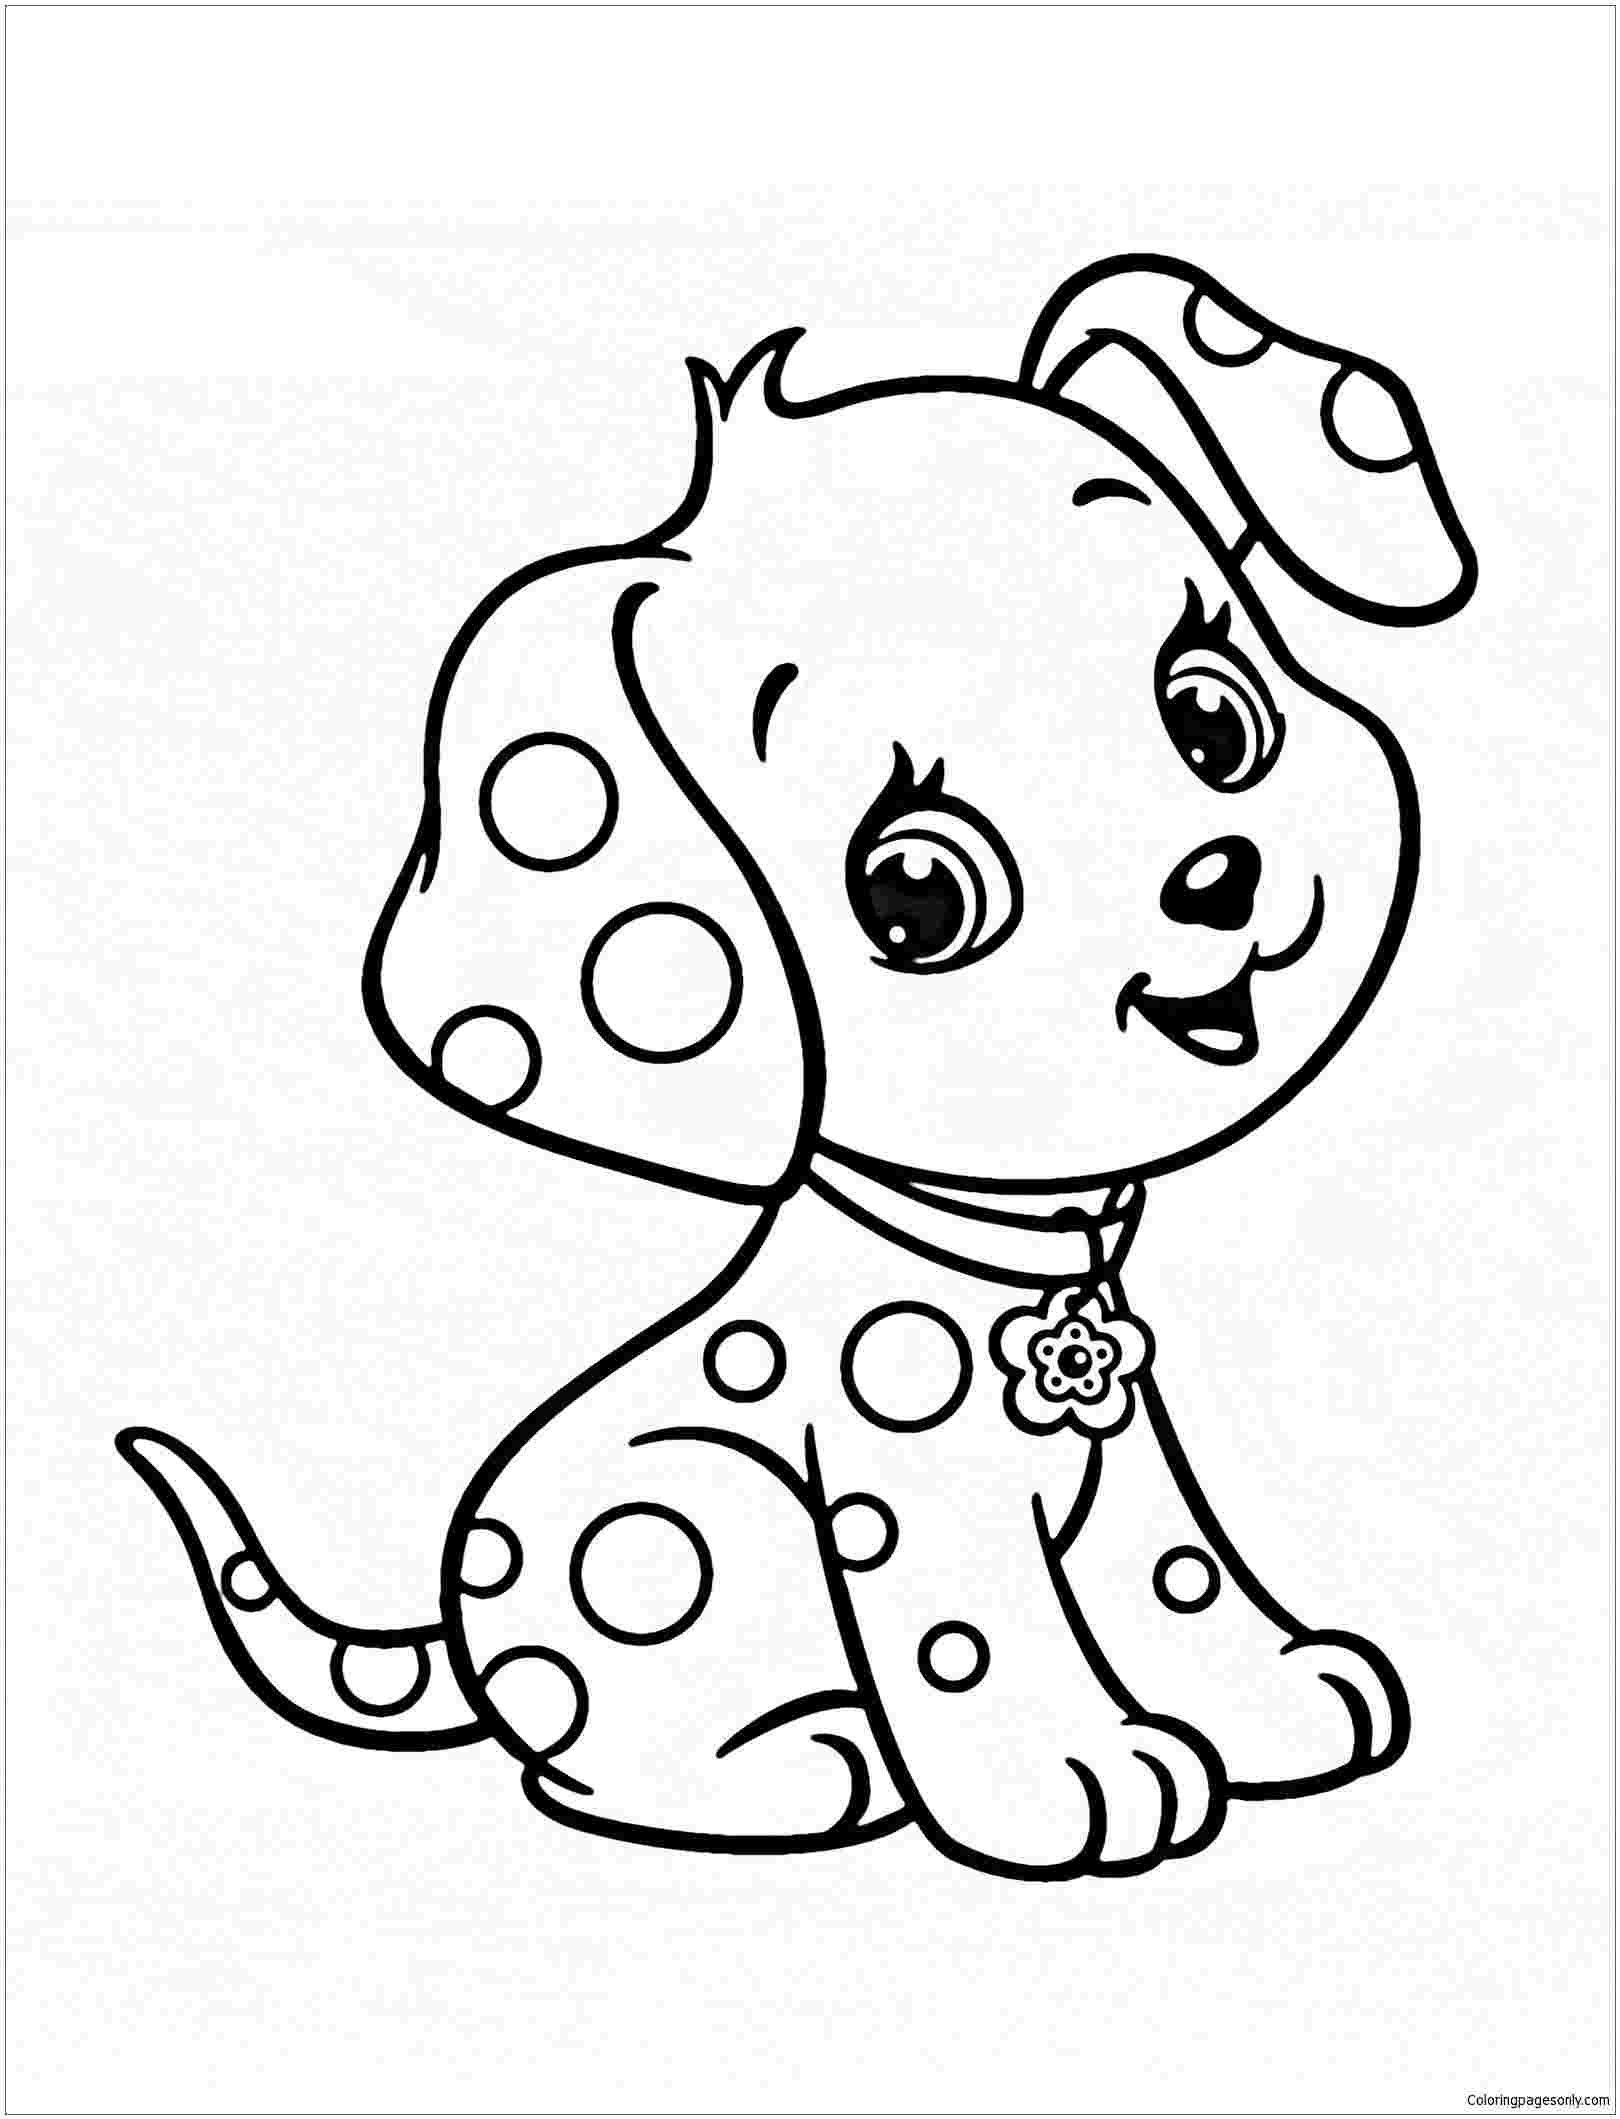 Princess Dog Coloring Page Youngandtae Com Puppy Coloring Pages Dog Coloring Page Unicorn Coloring Pages